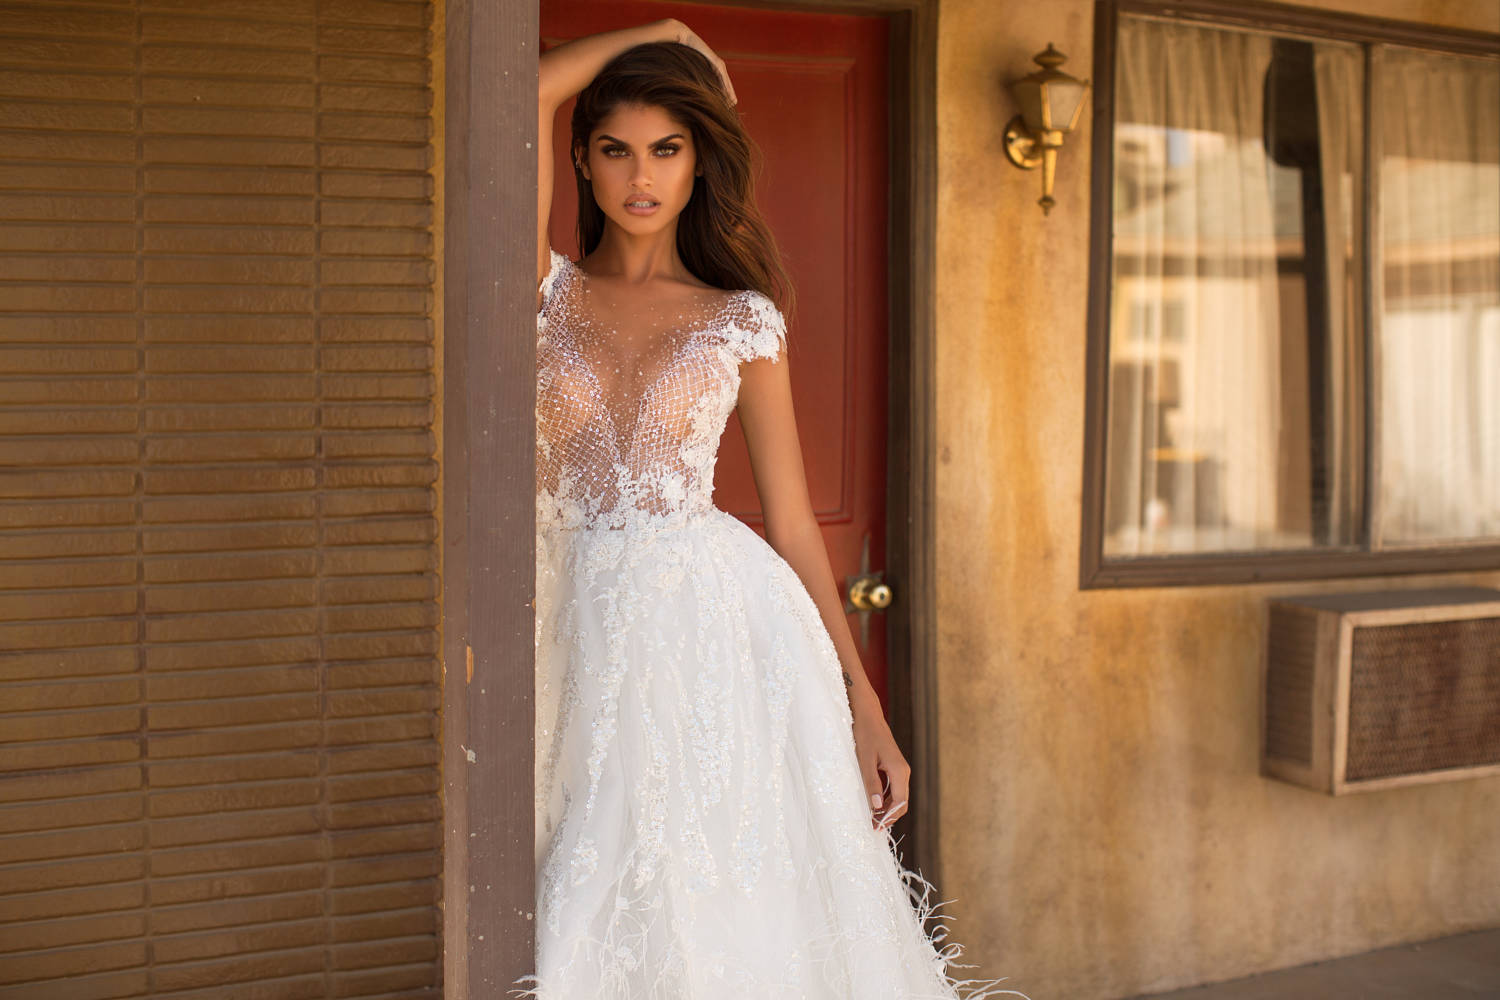 Blushing Bridal Boutique ,MillaNova, Janis, California Dreaming, New Collection 2019 ,wedding gown-Mississauga-woodbridge-vaughan-toronto-gta-ontario-canada-montreal-buffalo-NYC-california